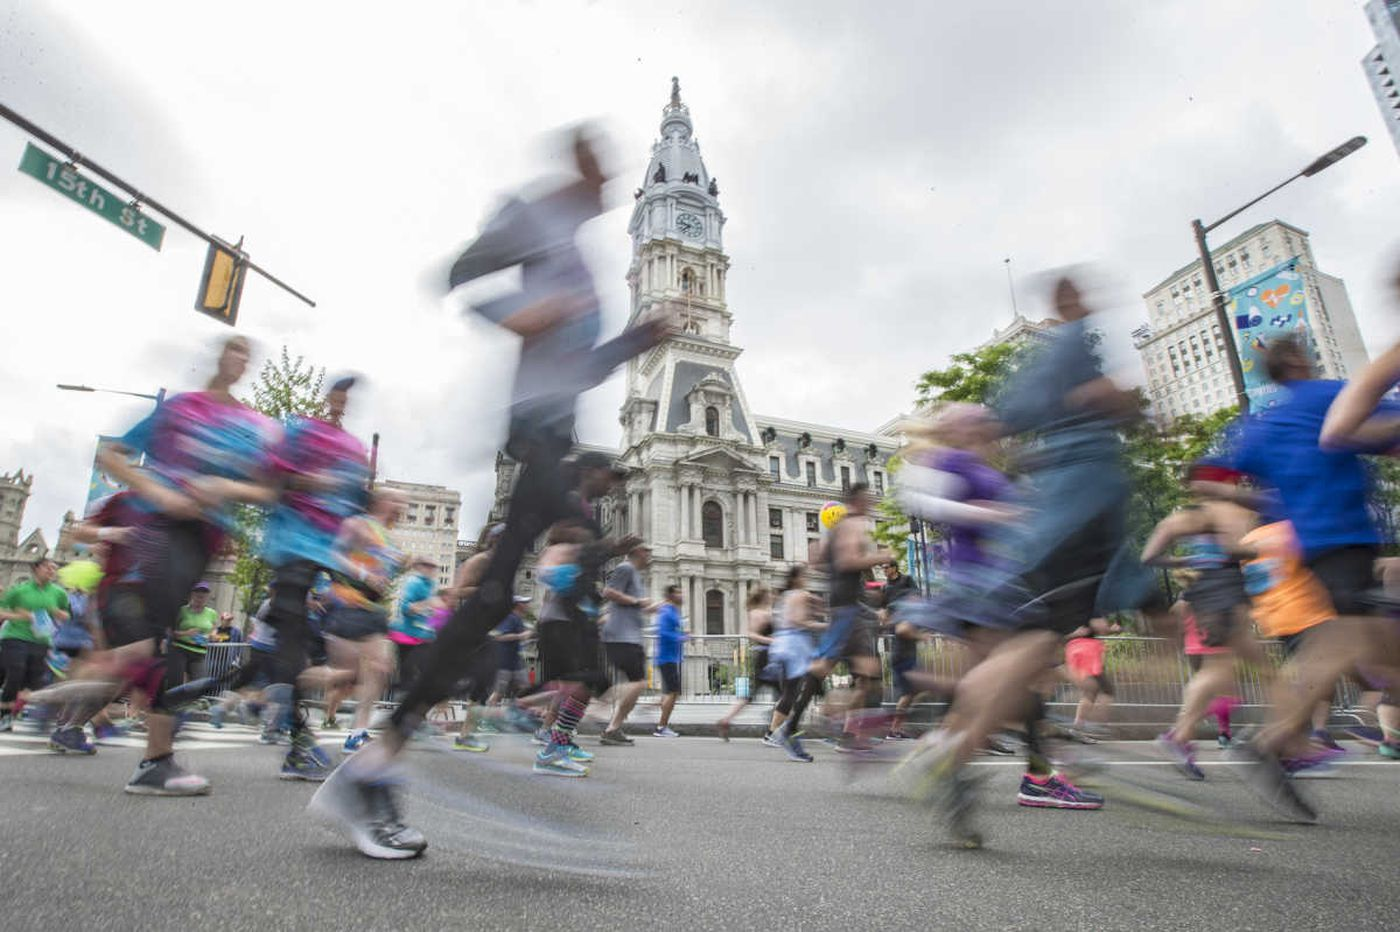 Broad Street runners, you finished a 10-mile race. Now what?